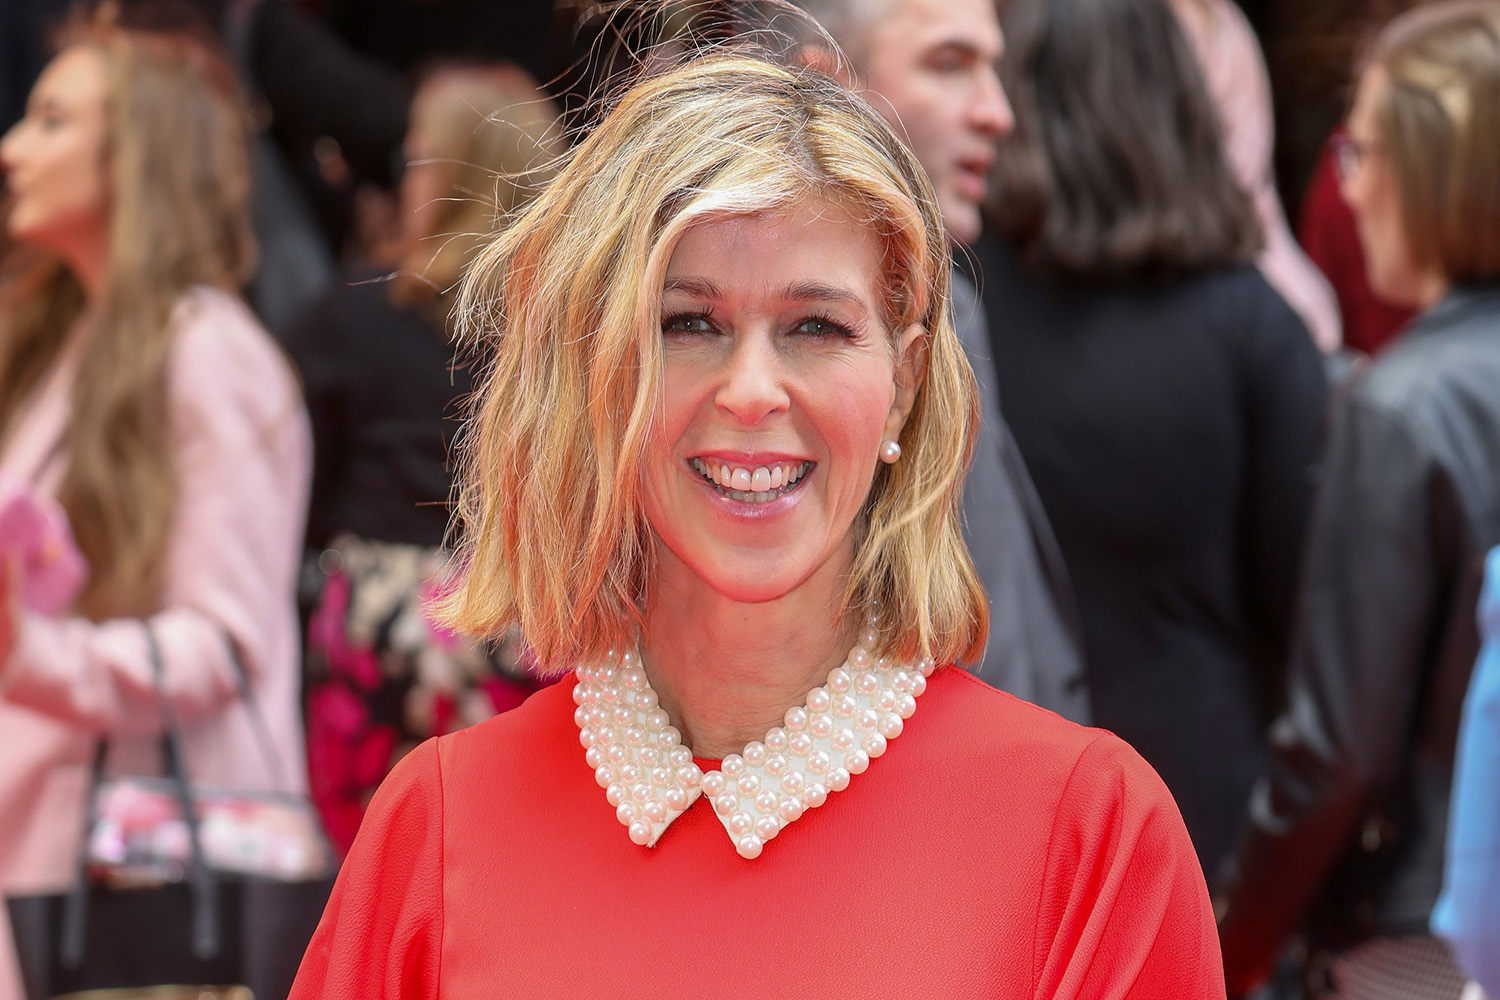 Kate Garraway reveals son Billy's gift for poorly dad Derek Draper